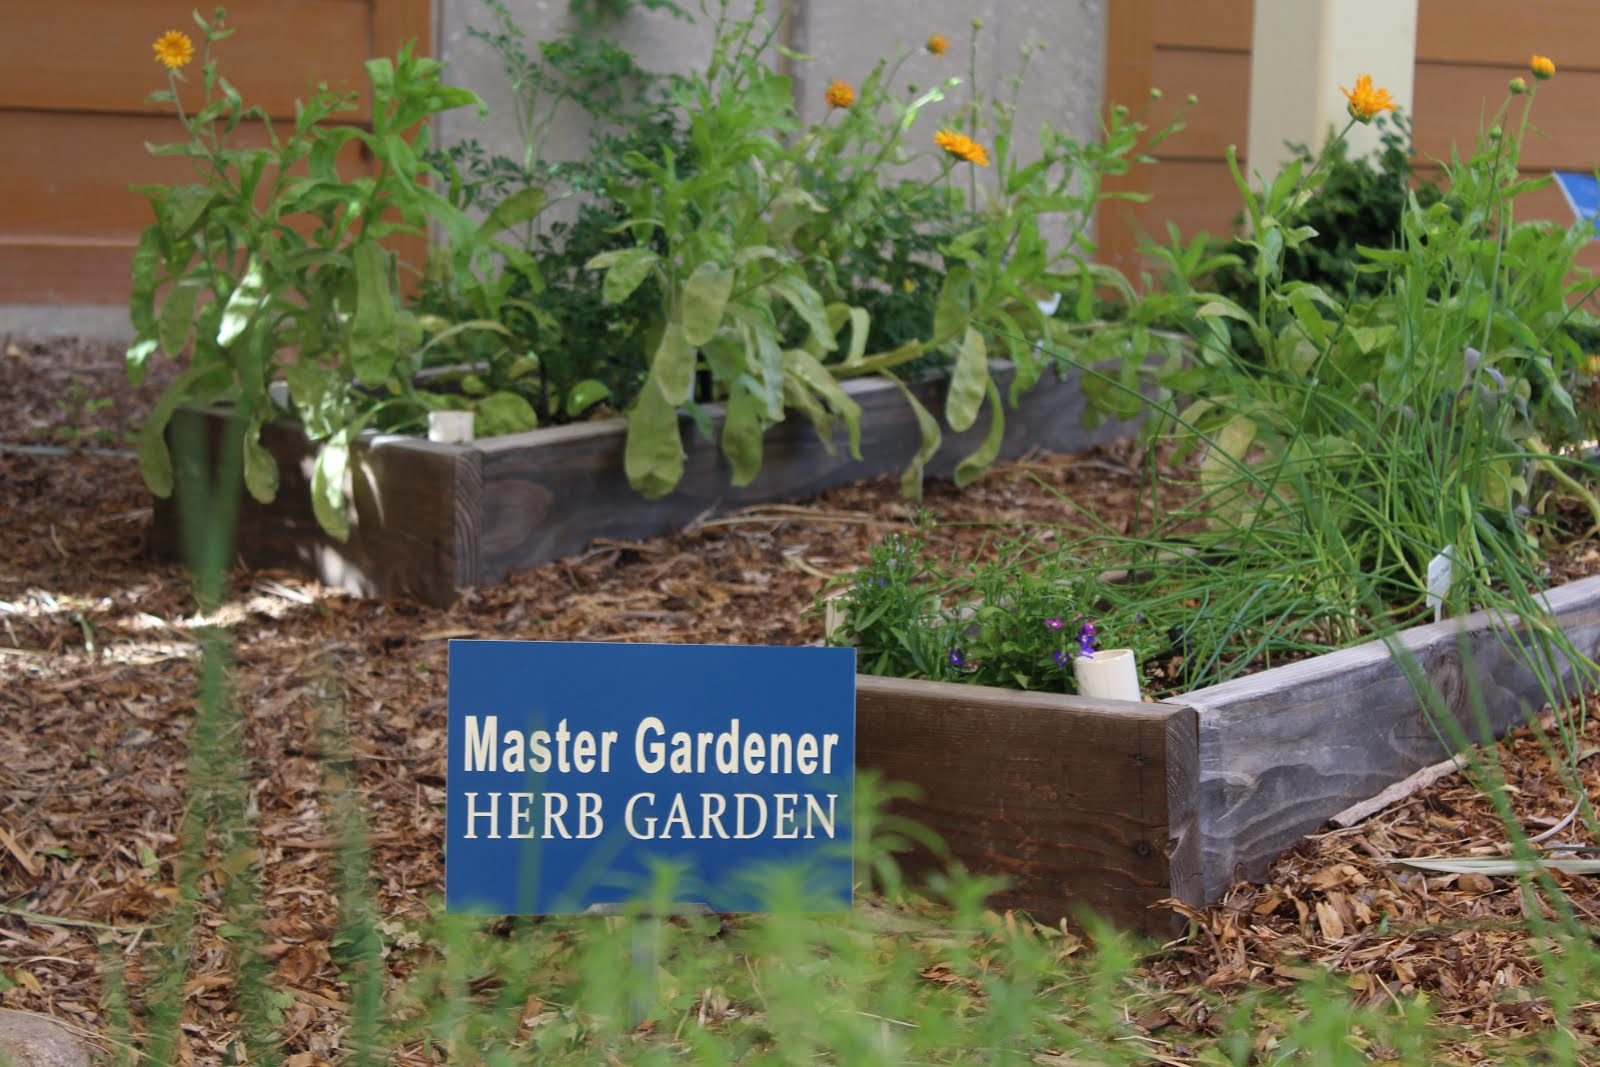 Star Nursery Blog: Stunning Herb Garden Ideas You\'ll Want to Steal